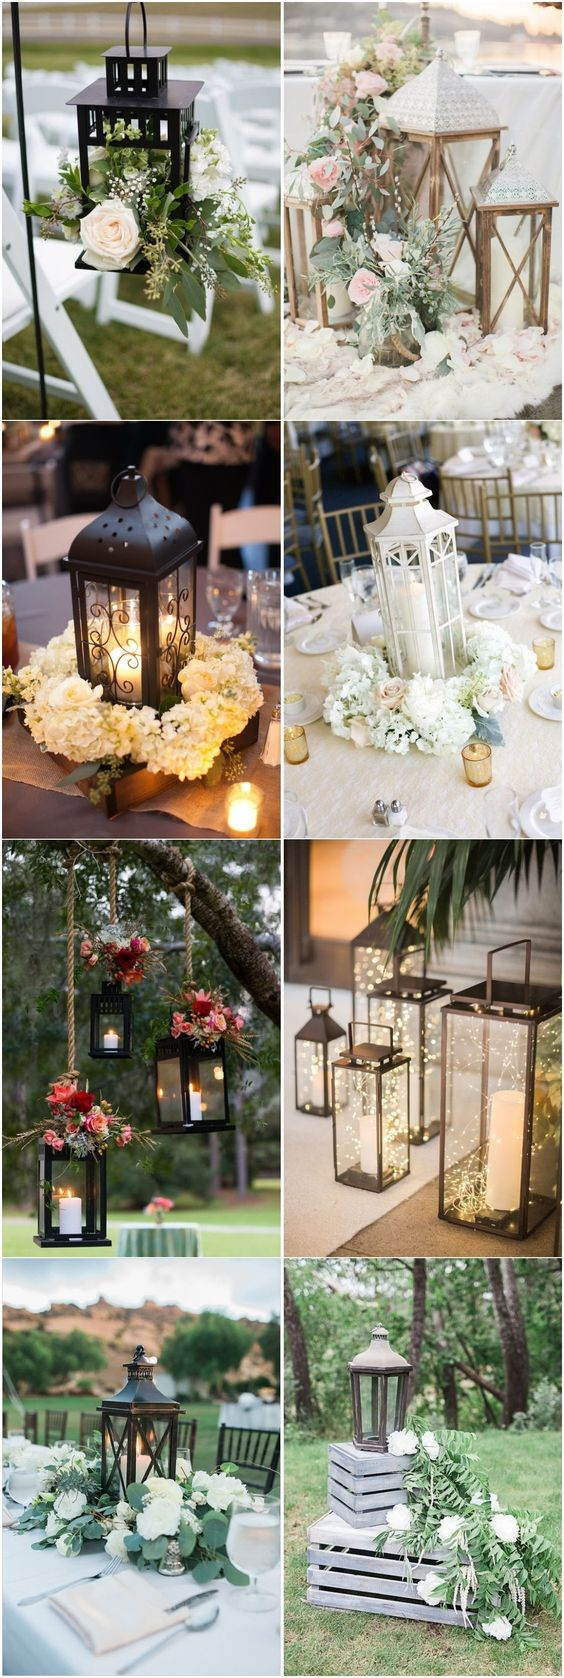 Lantern Decorations For Weddings 20 Rustic Lantern Wedding Decoration Ideas To Light Up Your Day